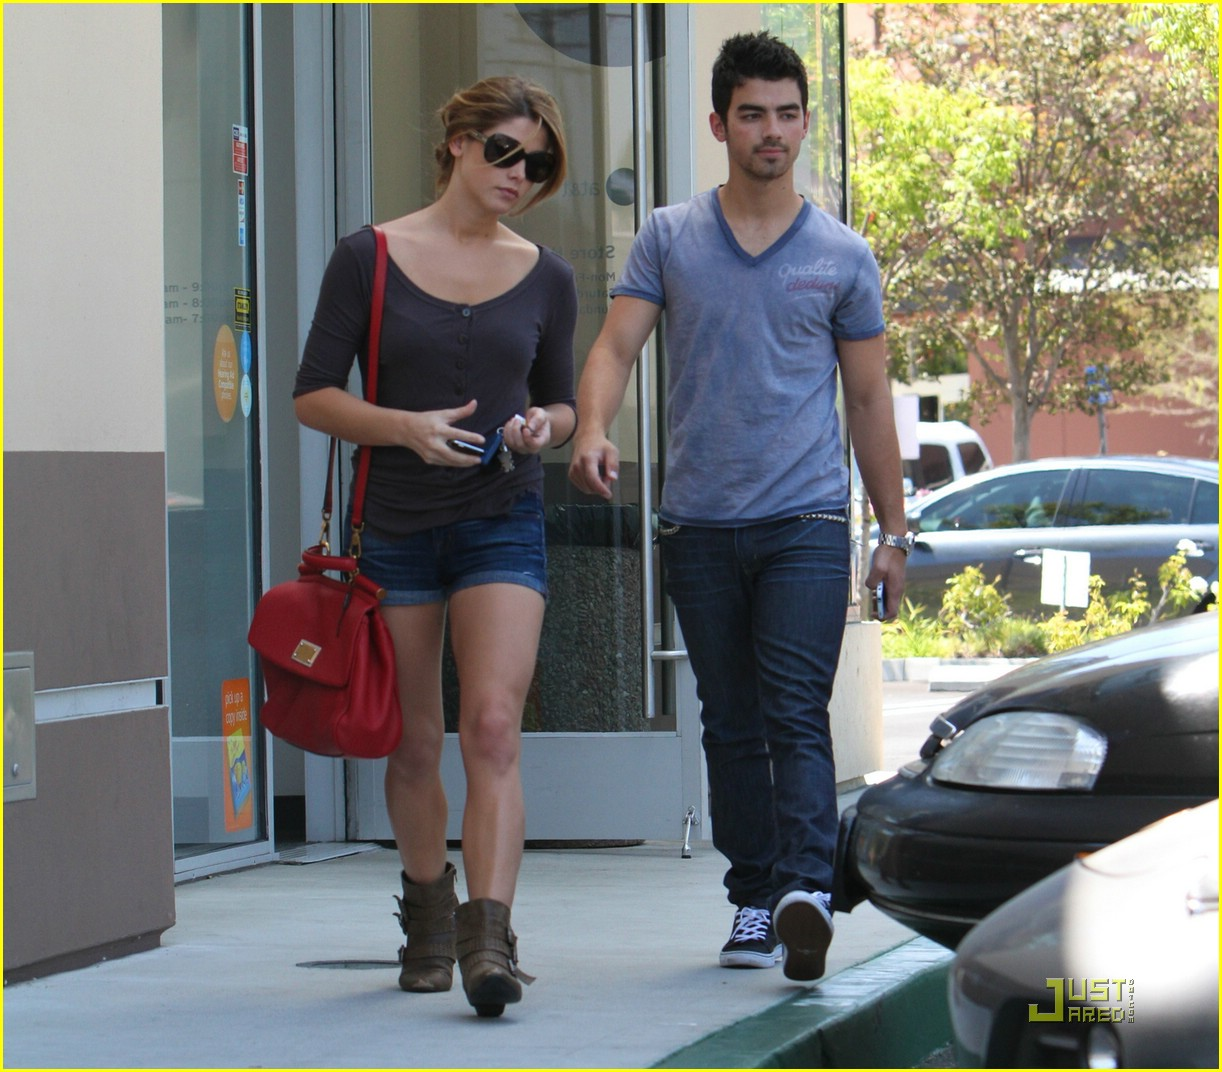 http://4.bp.blogspot.com/_MKl4HXmDmys/TGGmTExo5PI/AAAAAAAAEHQ/qezc_rcvLuU/s1600/ashley-greene-joe-jonas-coffee-01.jpg